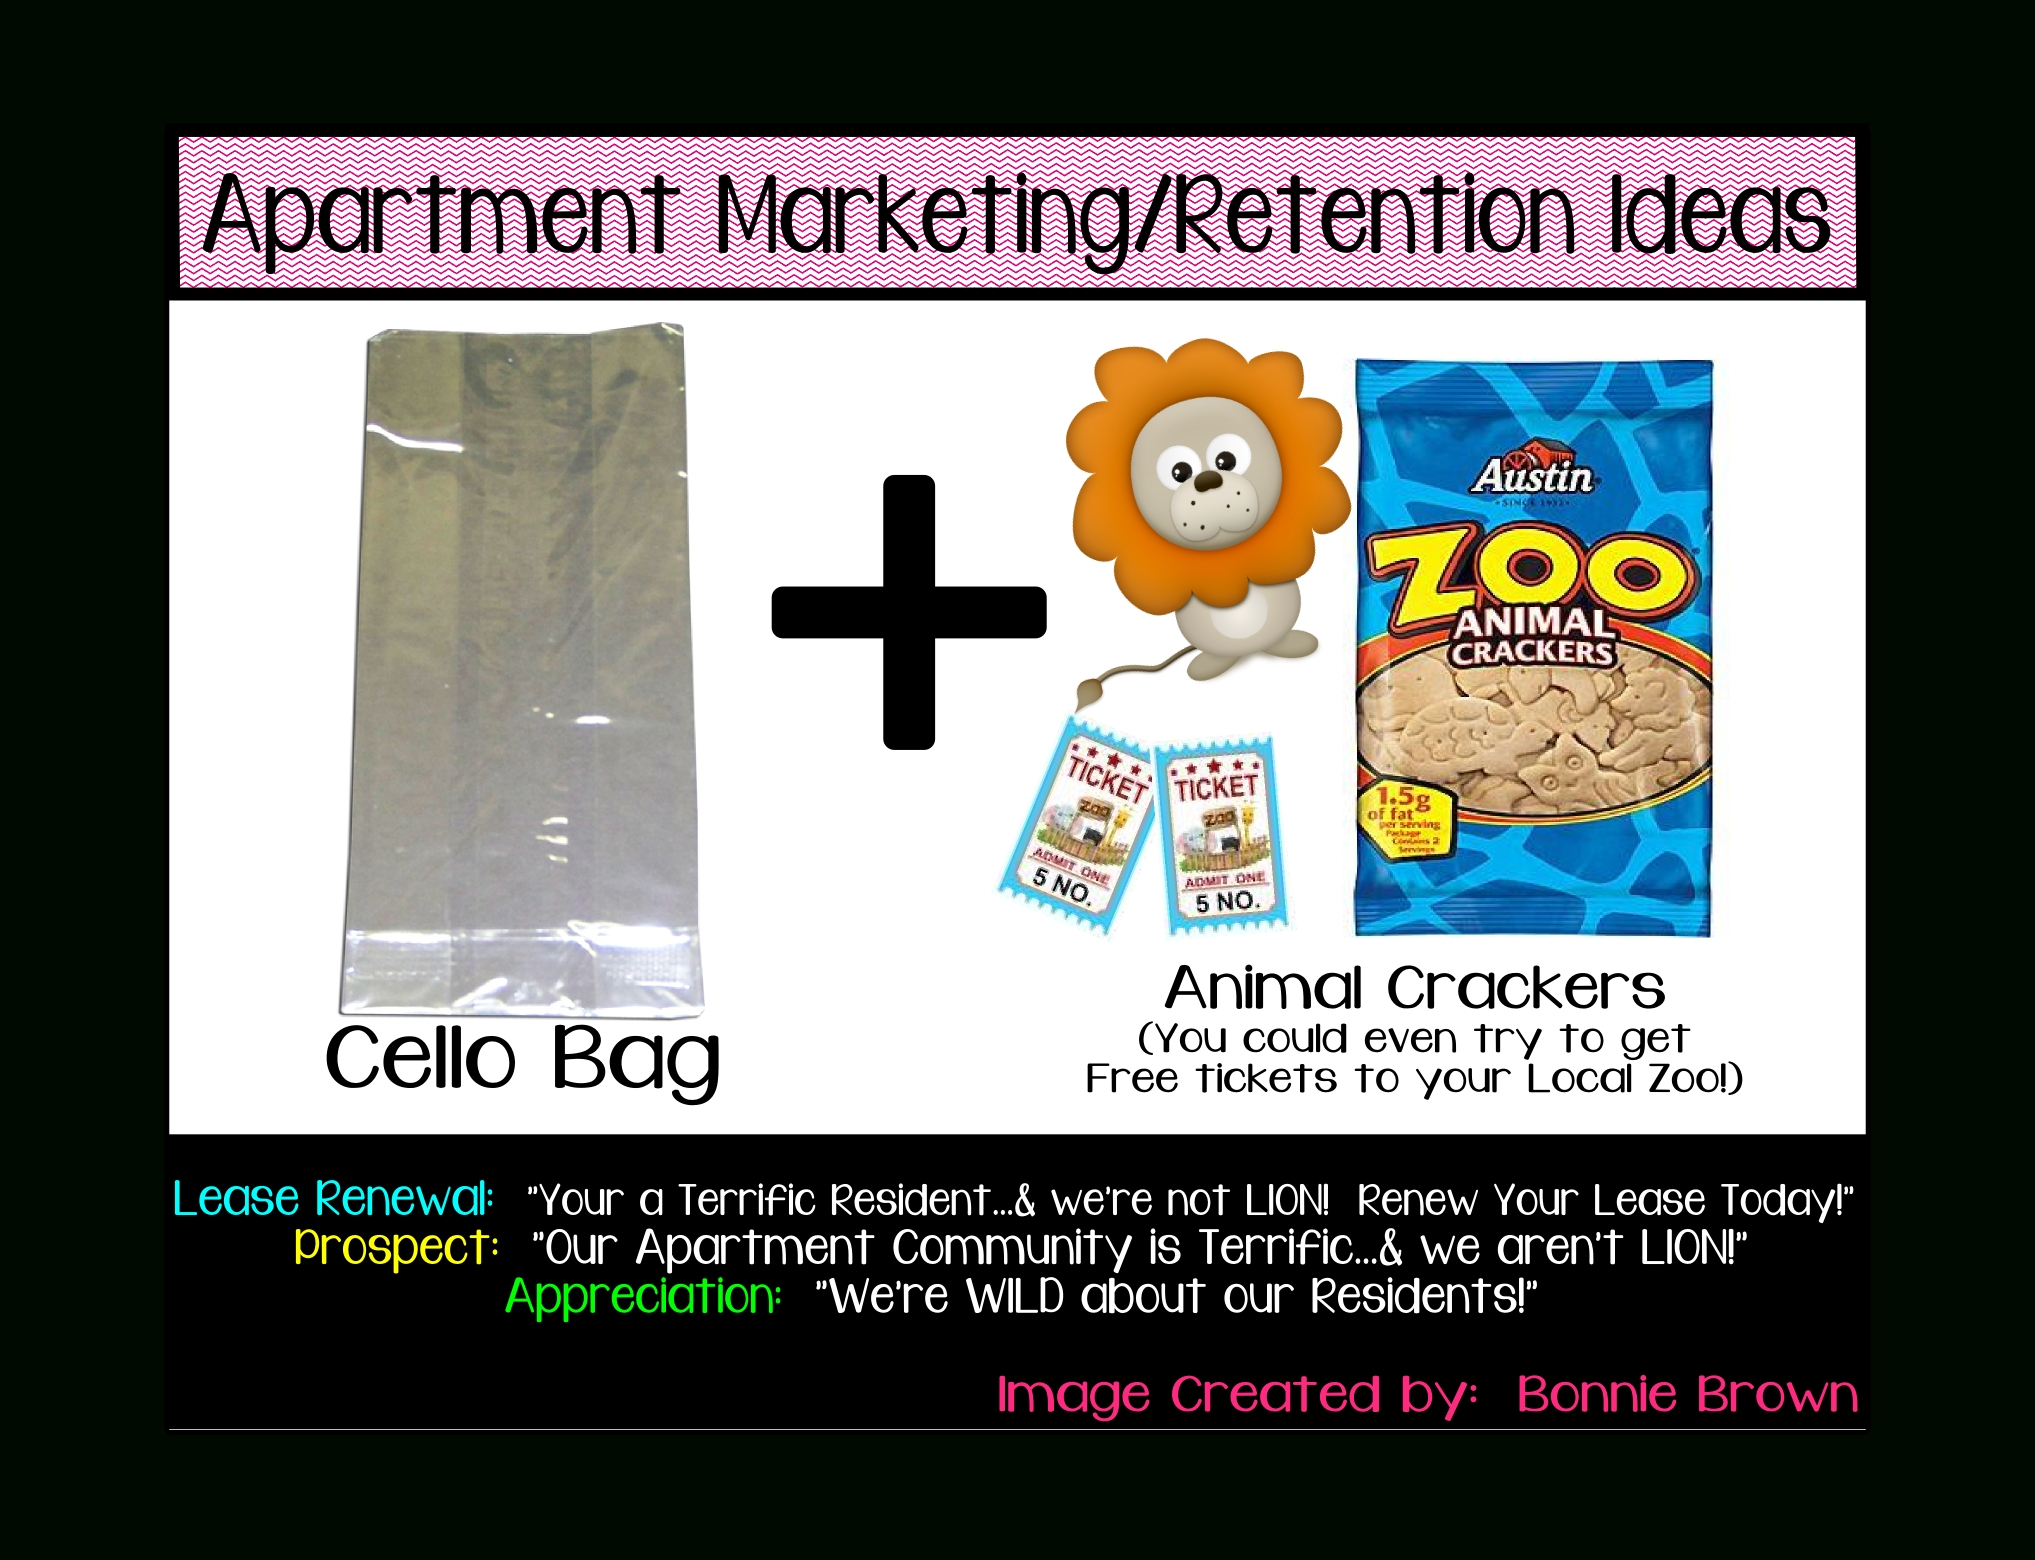 10 Ideal Outreach Marketing Ideas For Apartments apartment marketing retention ideas layout designedbonnie